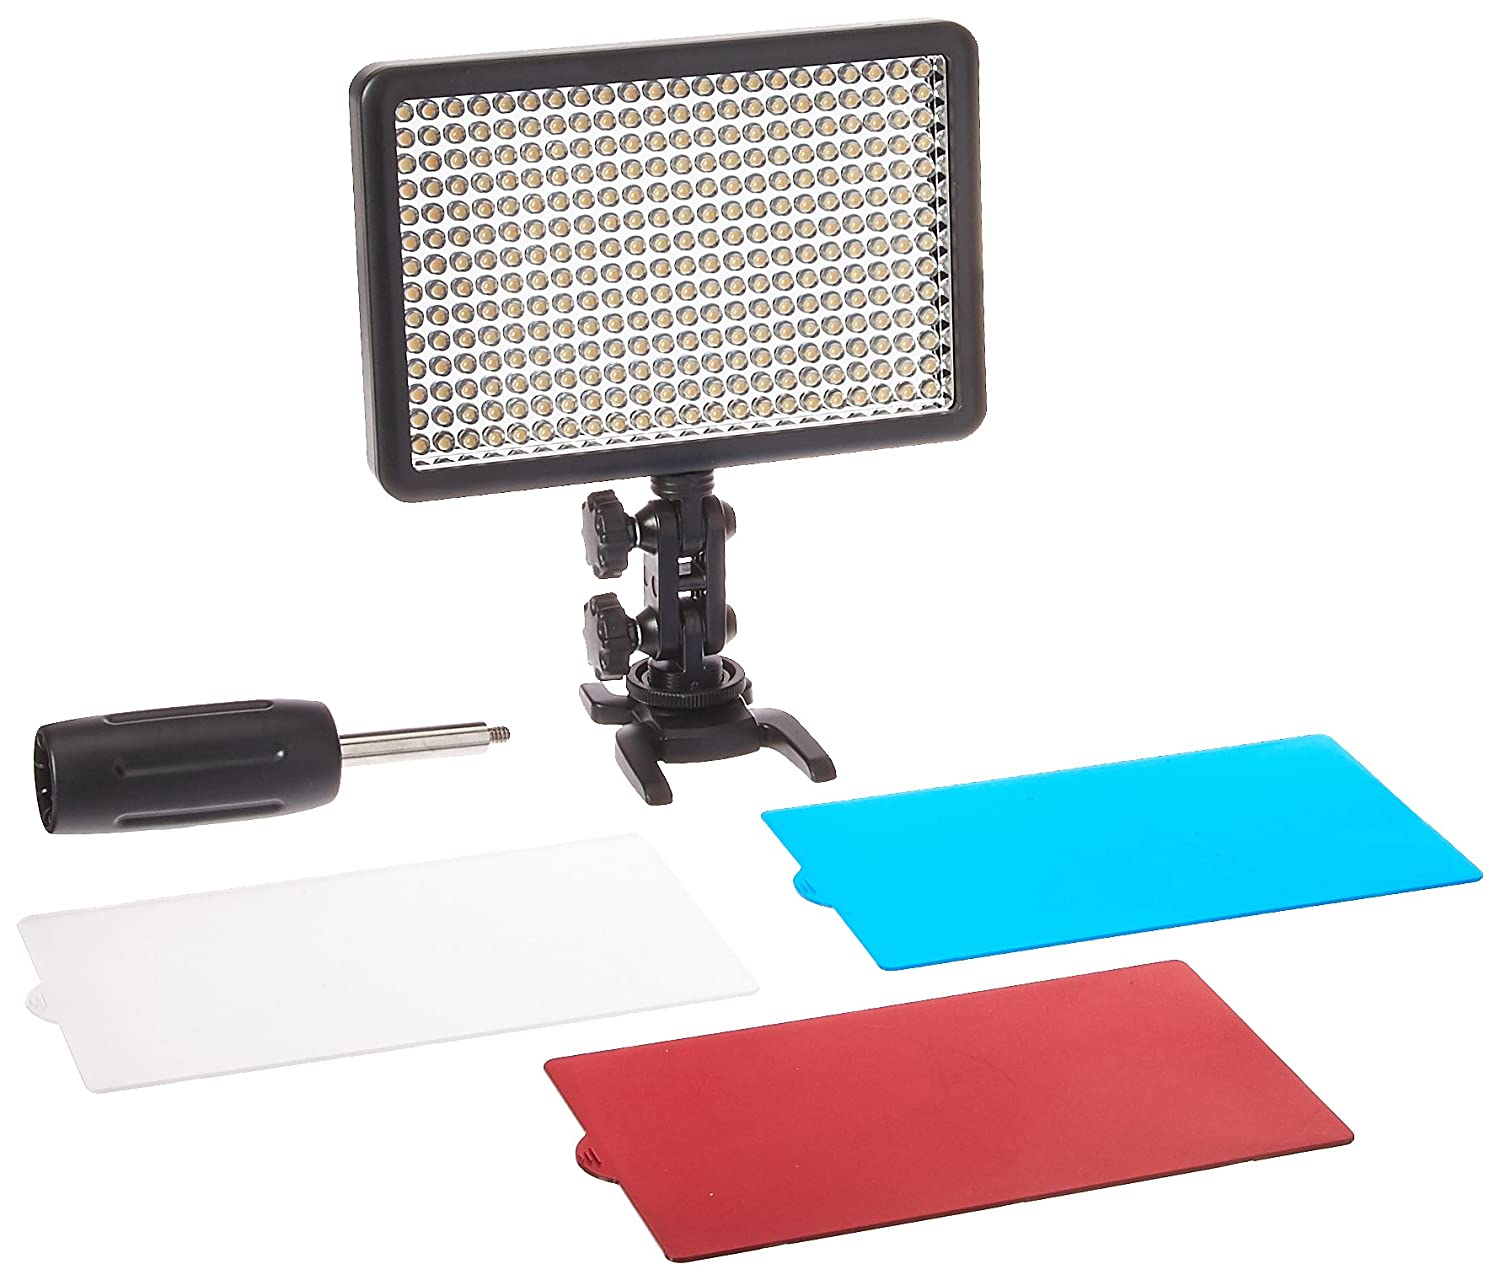 Bestlight® Photo Studio LED308C 308PCS LED Ultra High Power Dimmable Video Light with Built-in LCD Panel Neewer 10083183